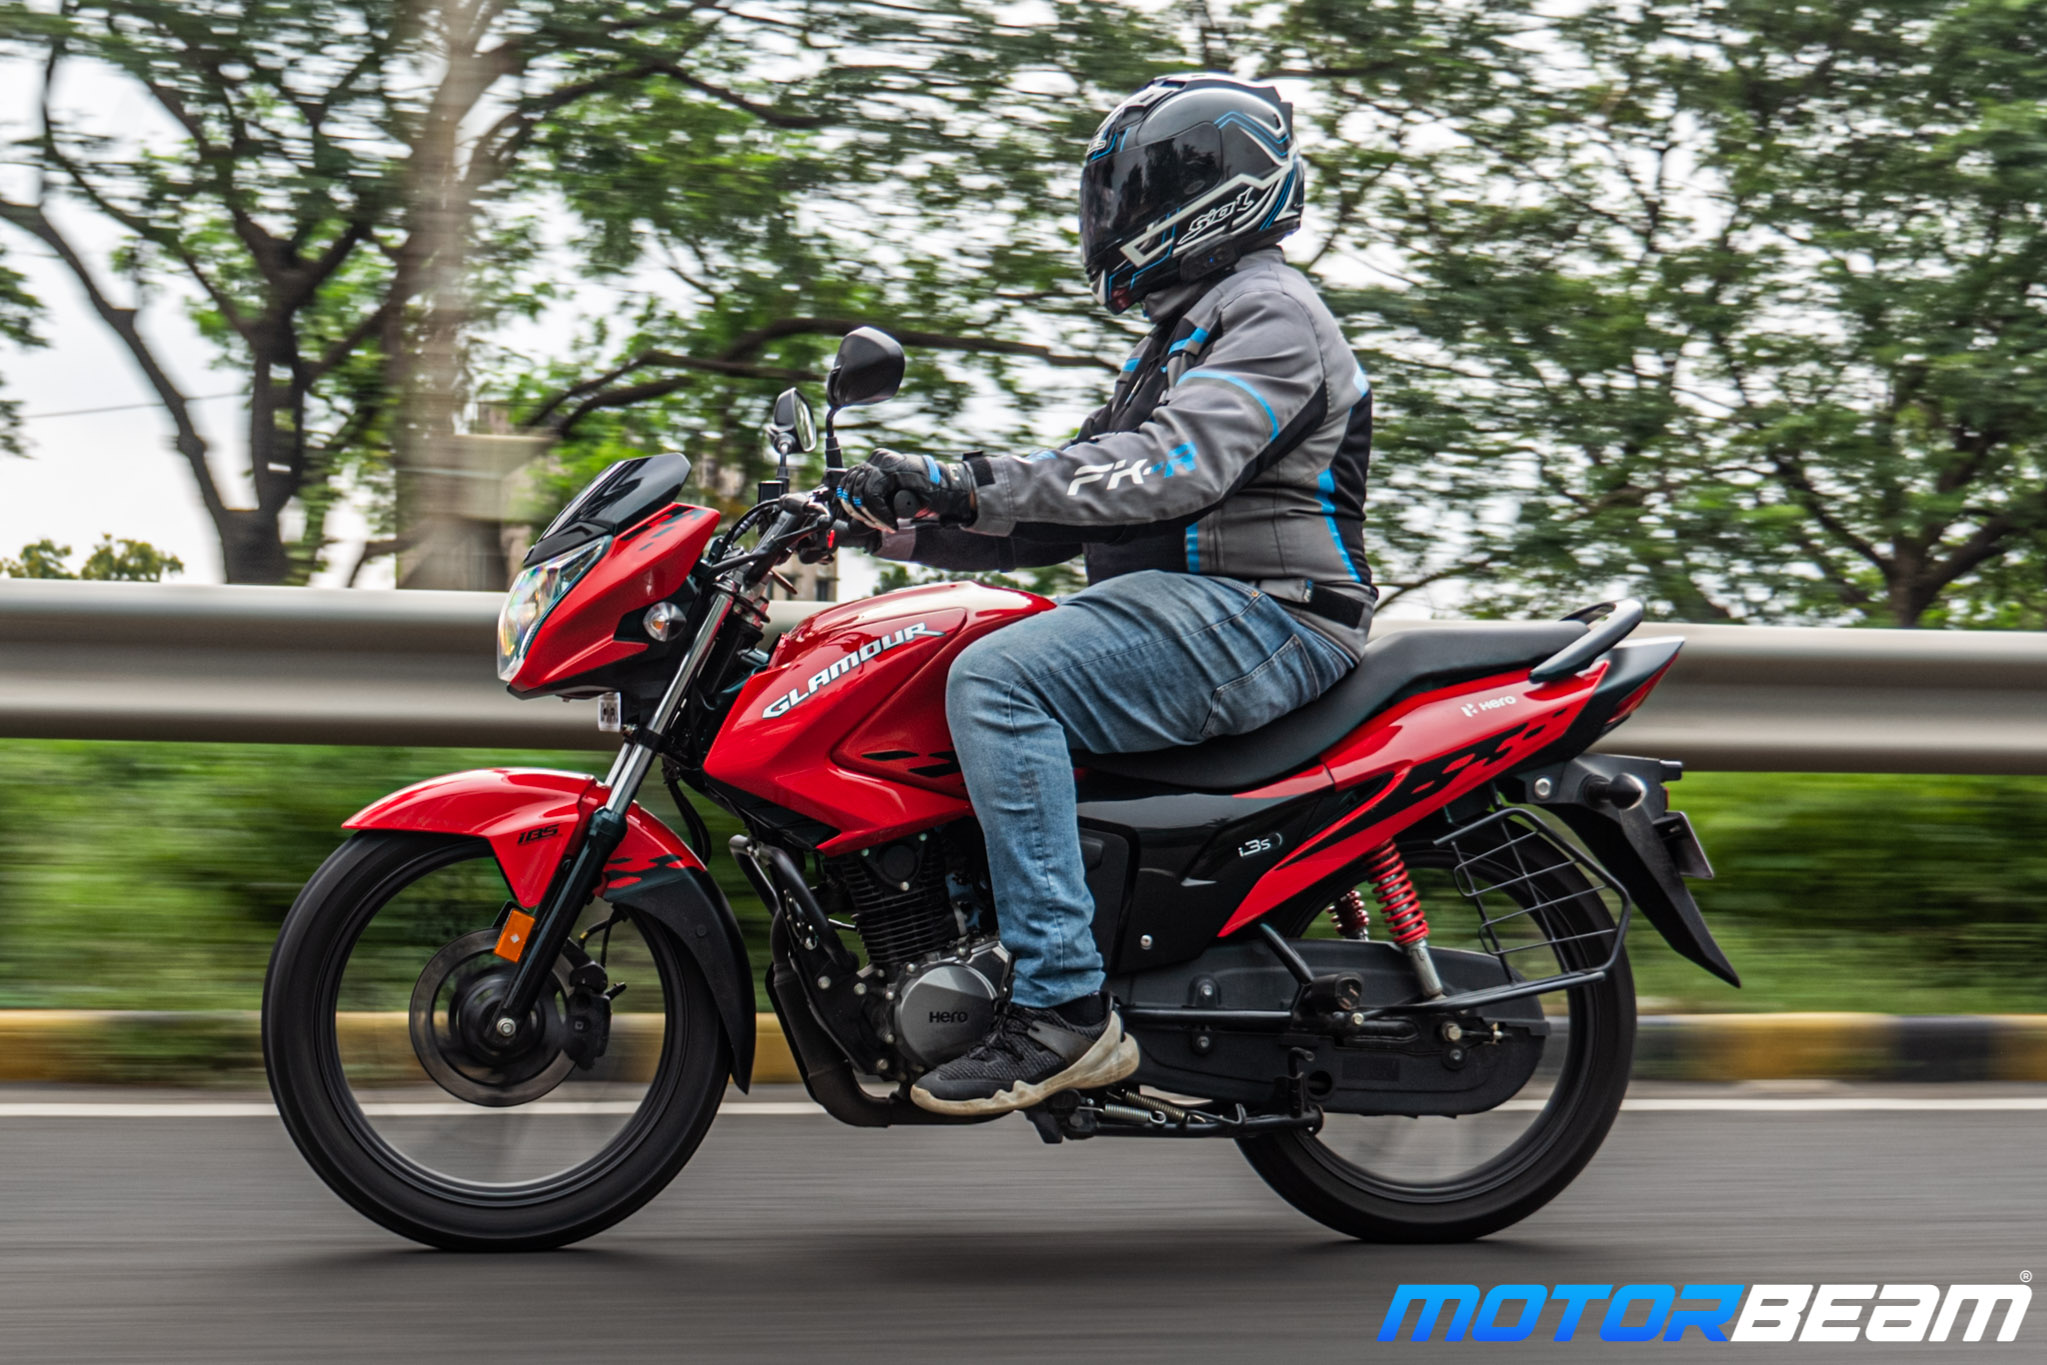 2020 Hero Glamour 125 Review 4